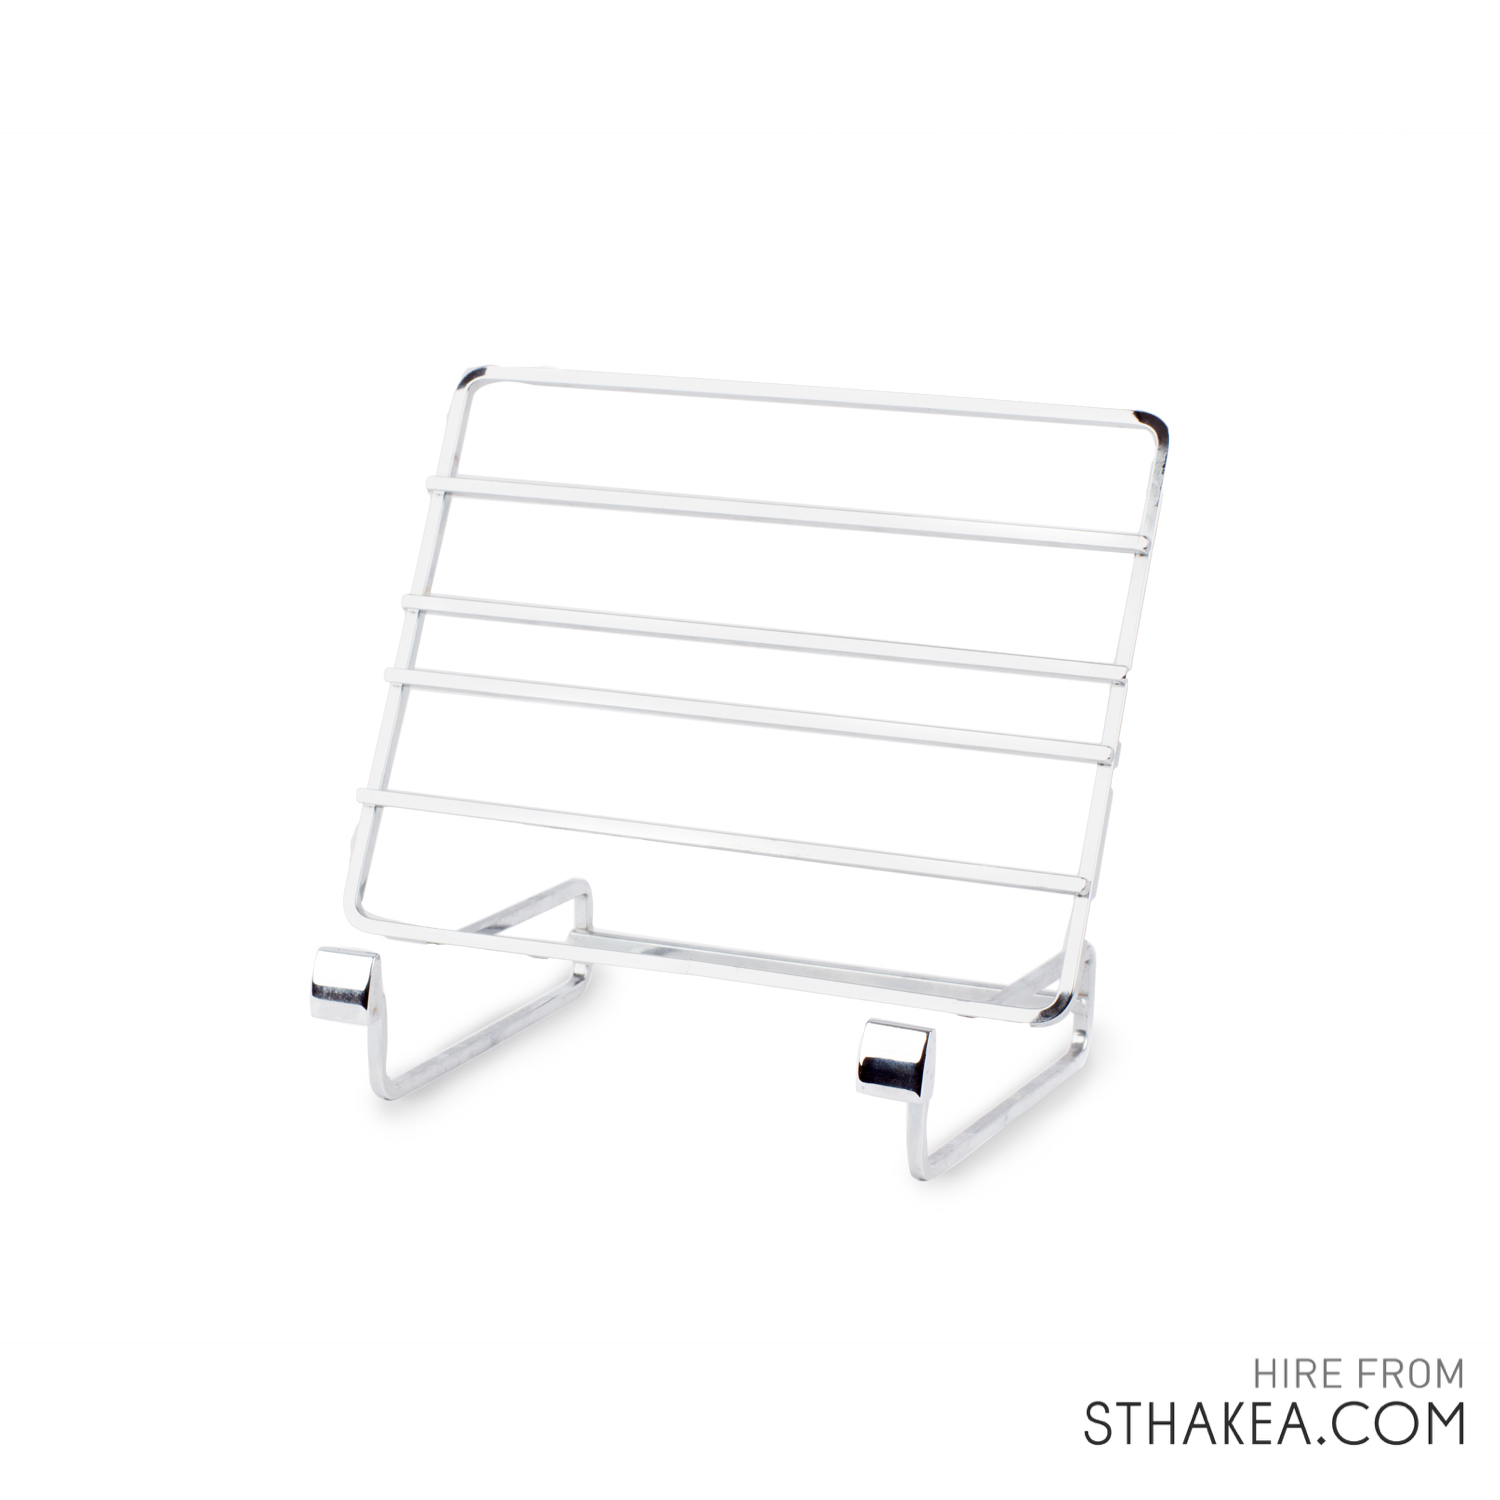 St Hakea Melbourne Event Hire Silver Display Stand.jpg